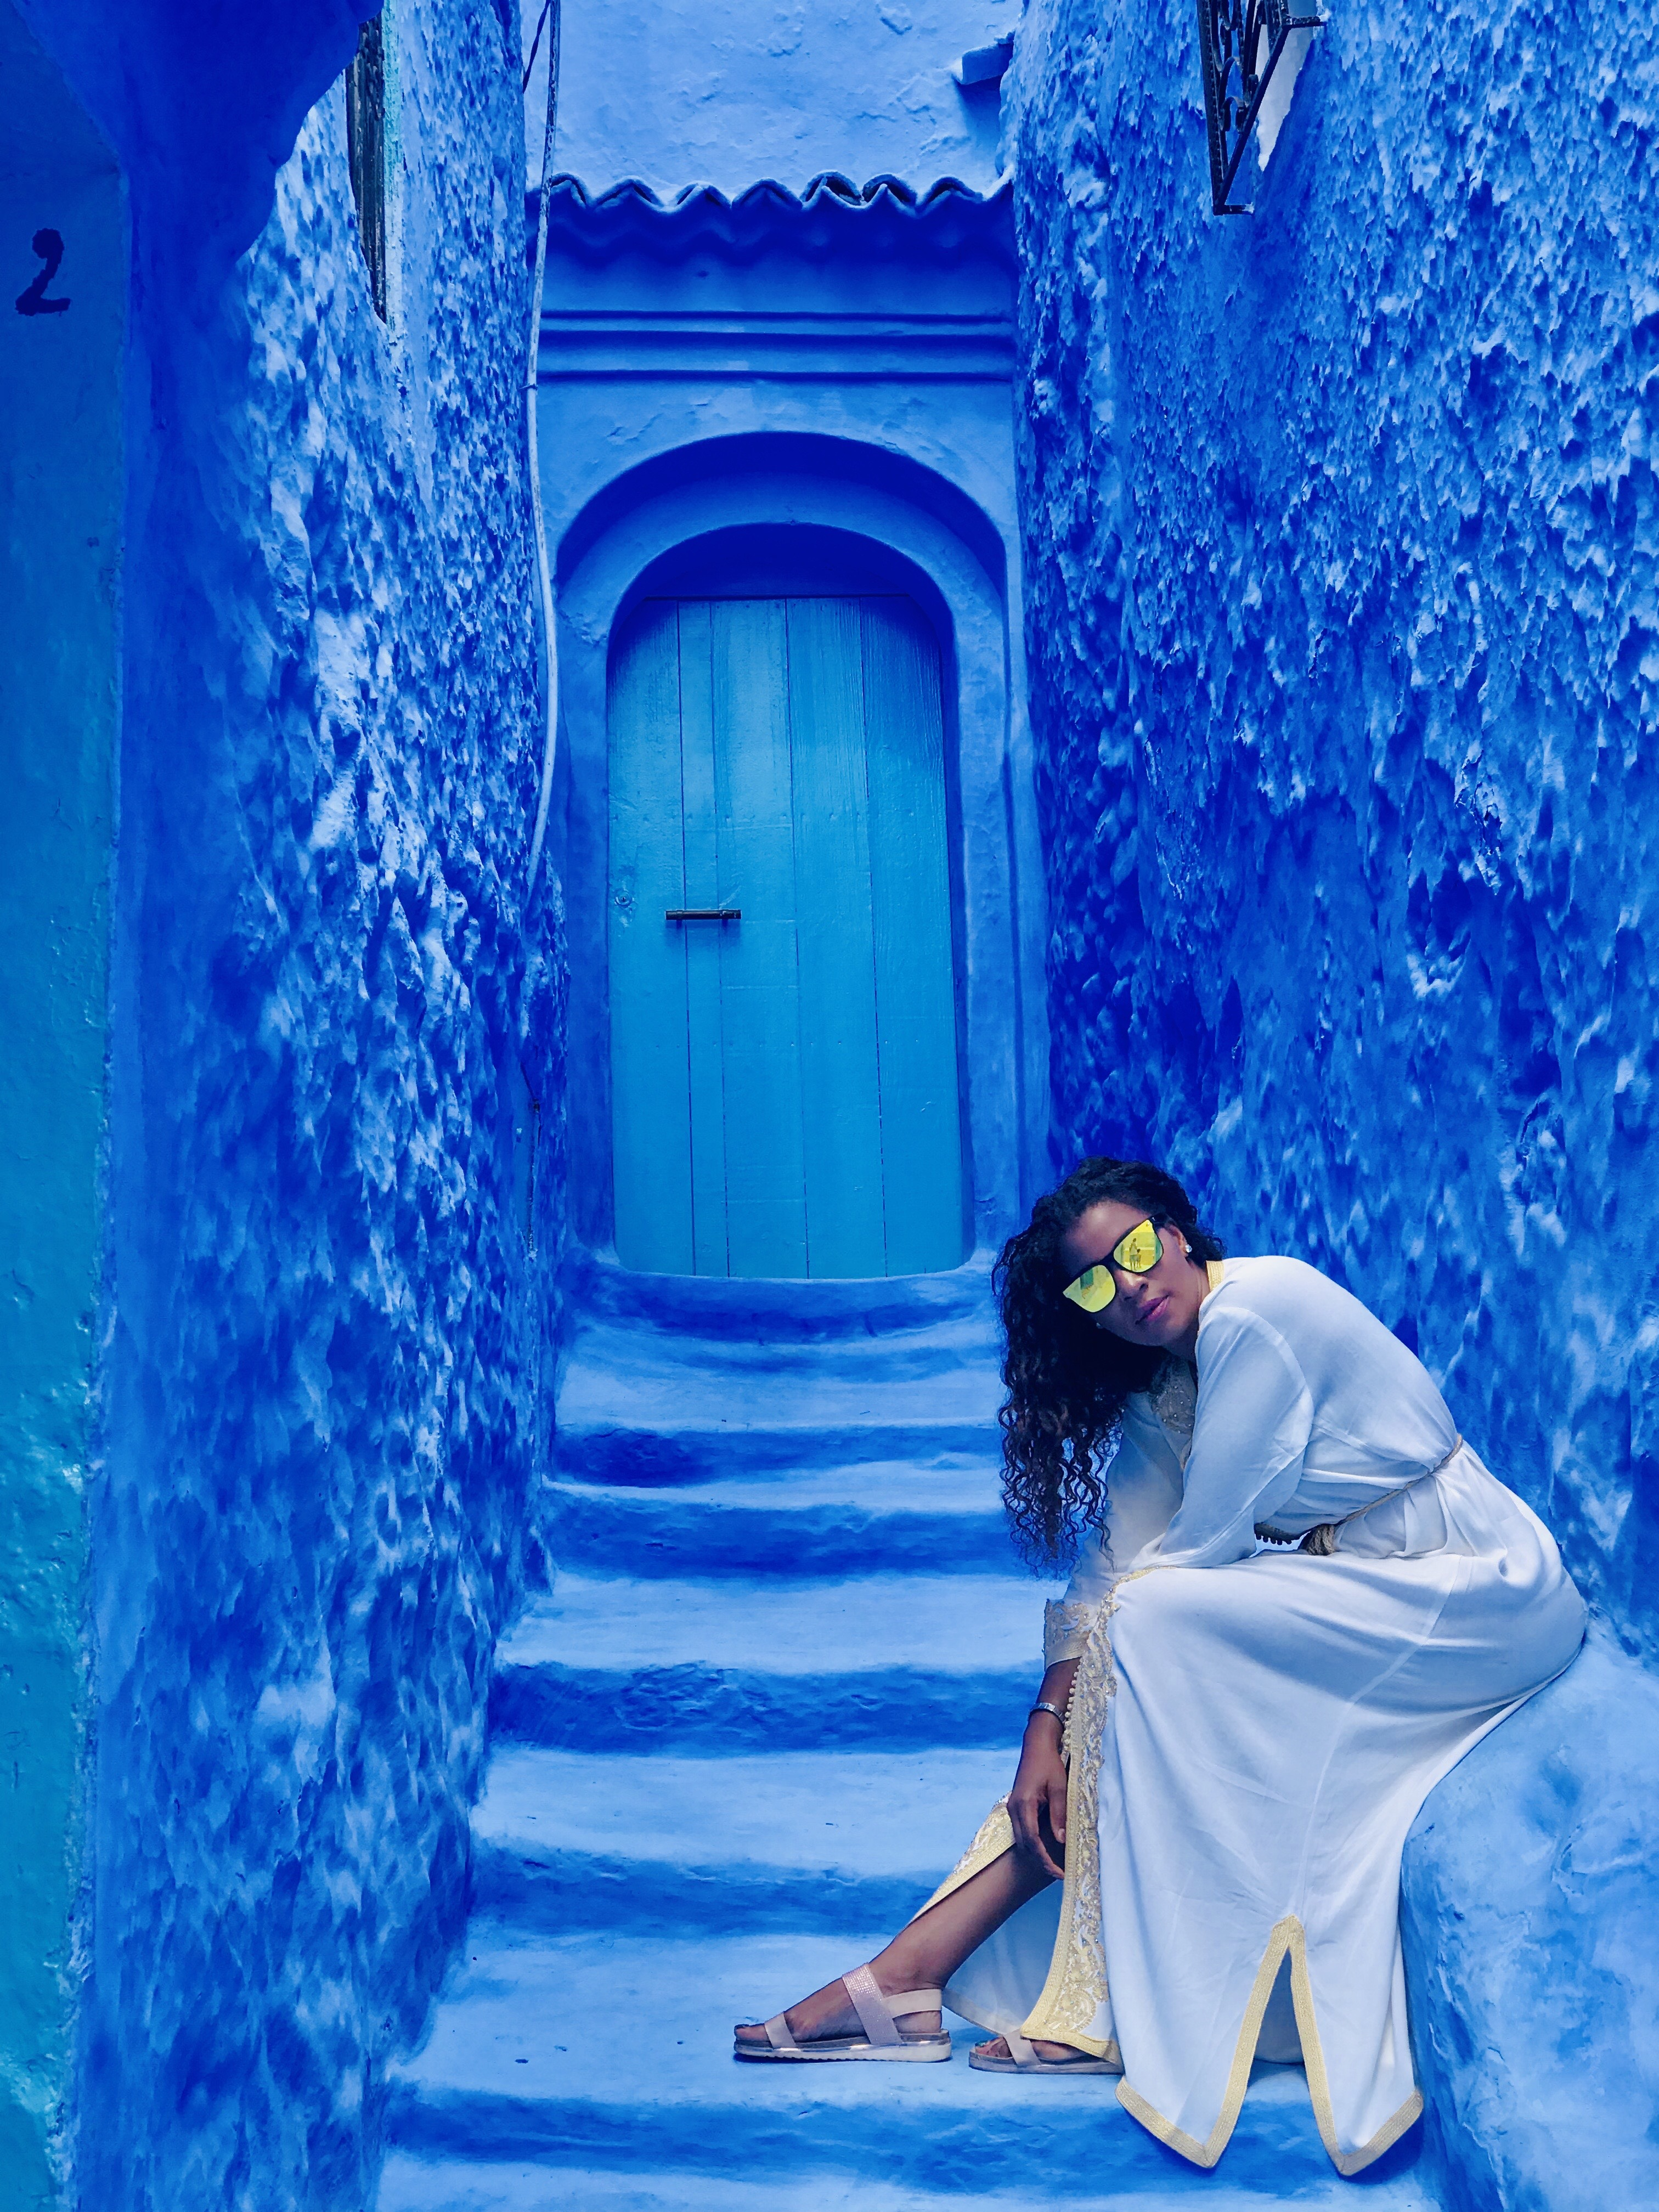 One of the many blue entrances to the local houses while we were exploring Chefchaouen; Morocco's blue pearl